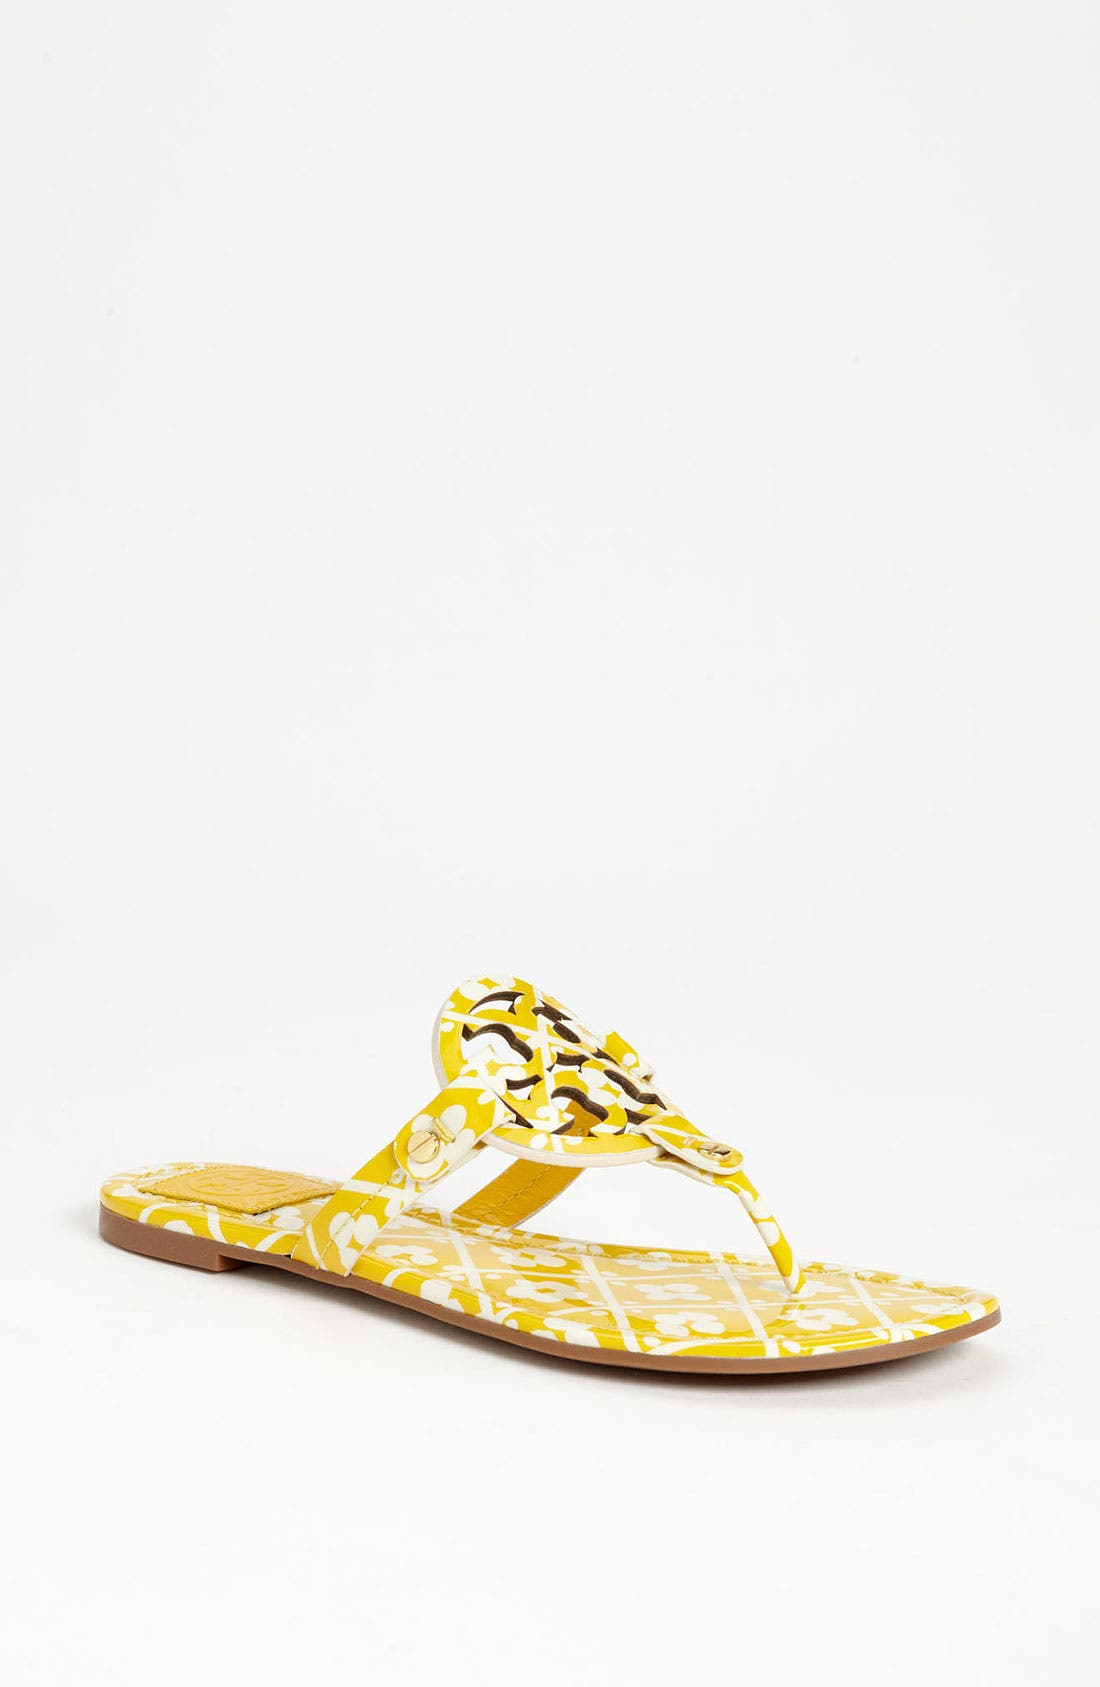 Alternate Image 1 Selected - Tory Burch 'Miller' Sandal